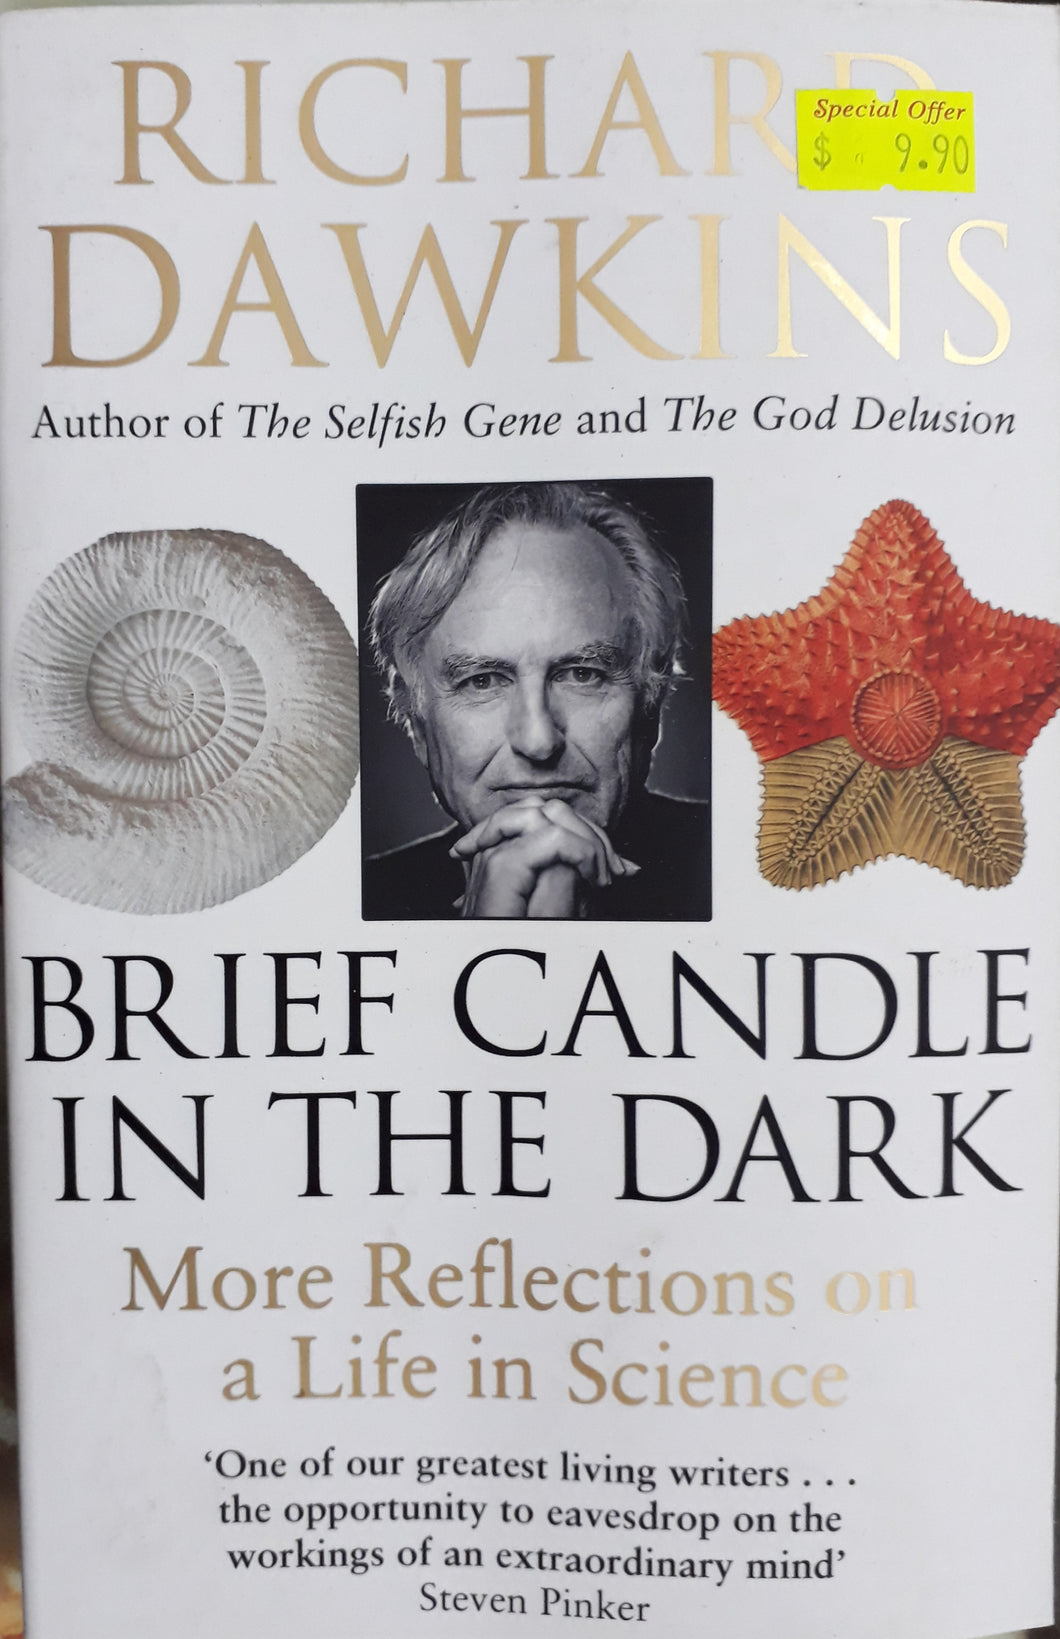 Brief Candle in the Dark - Richard Dawkins